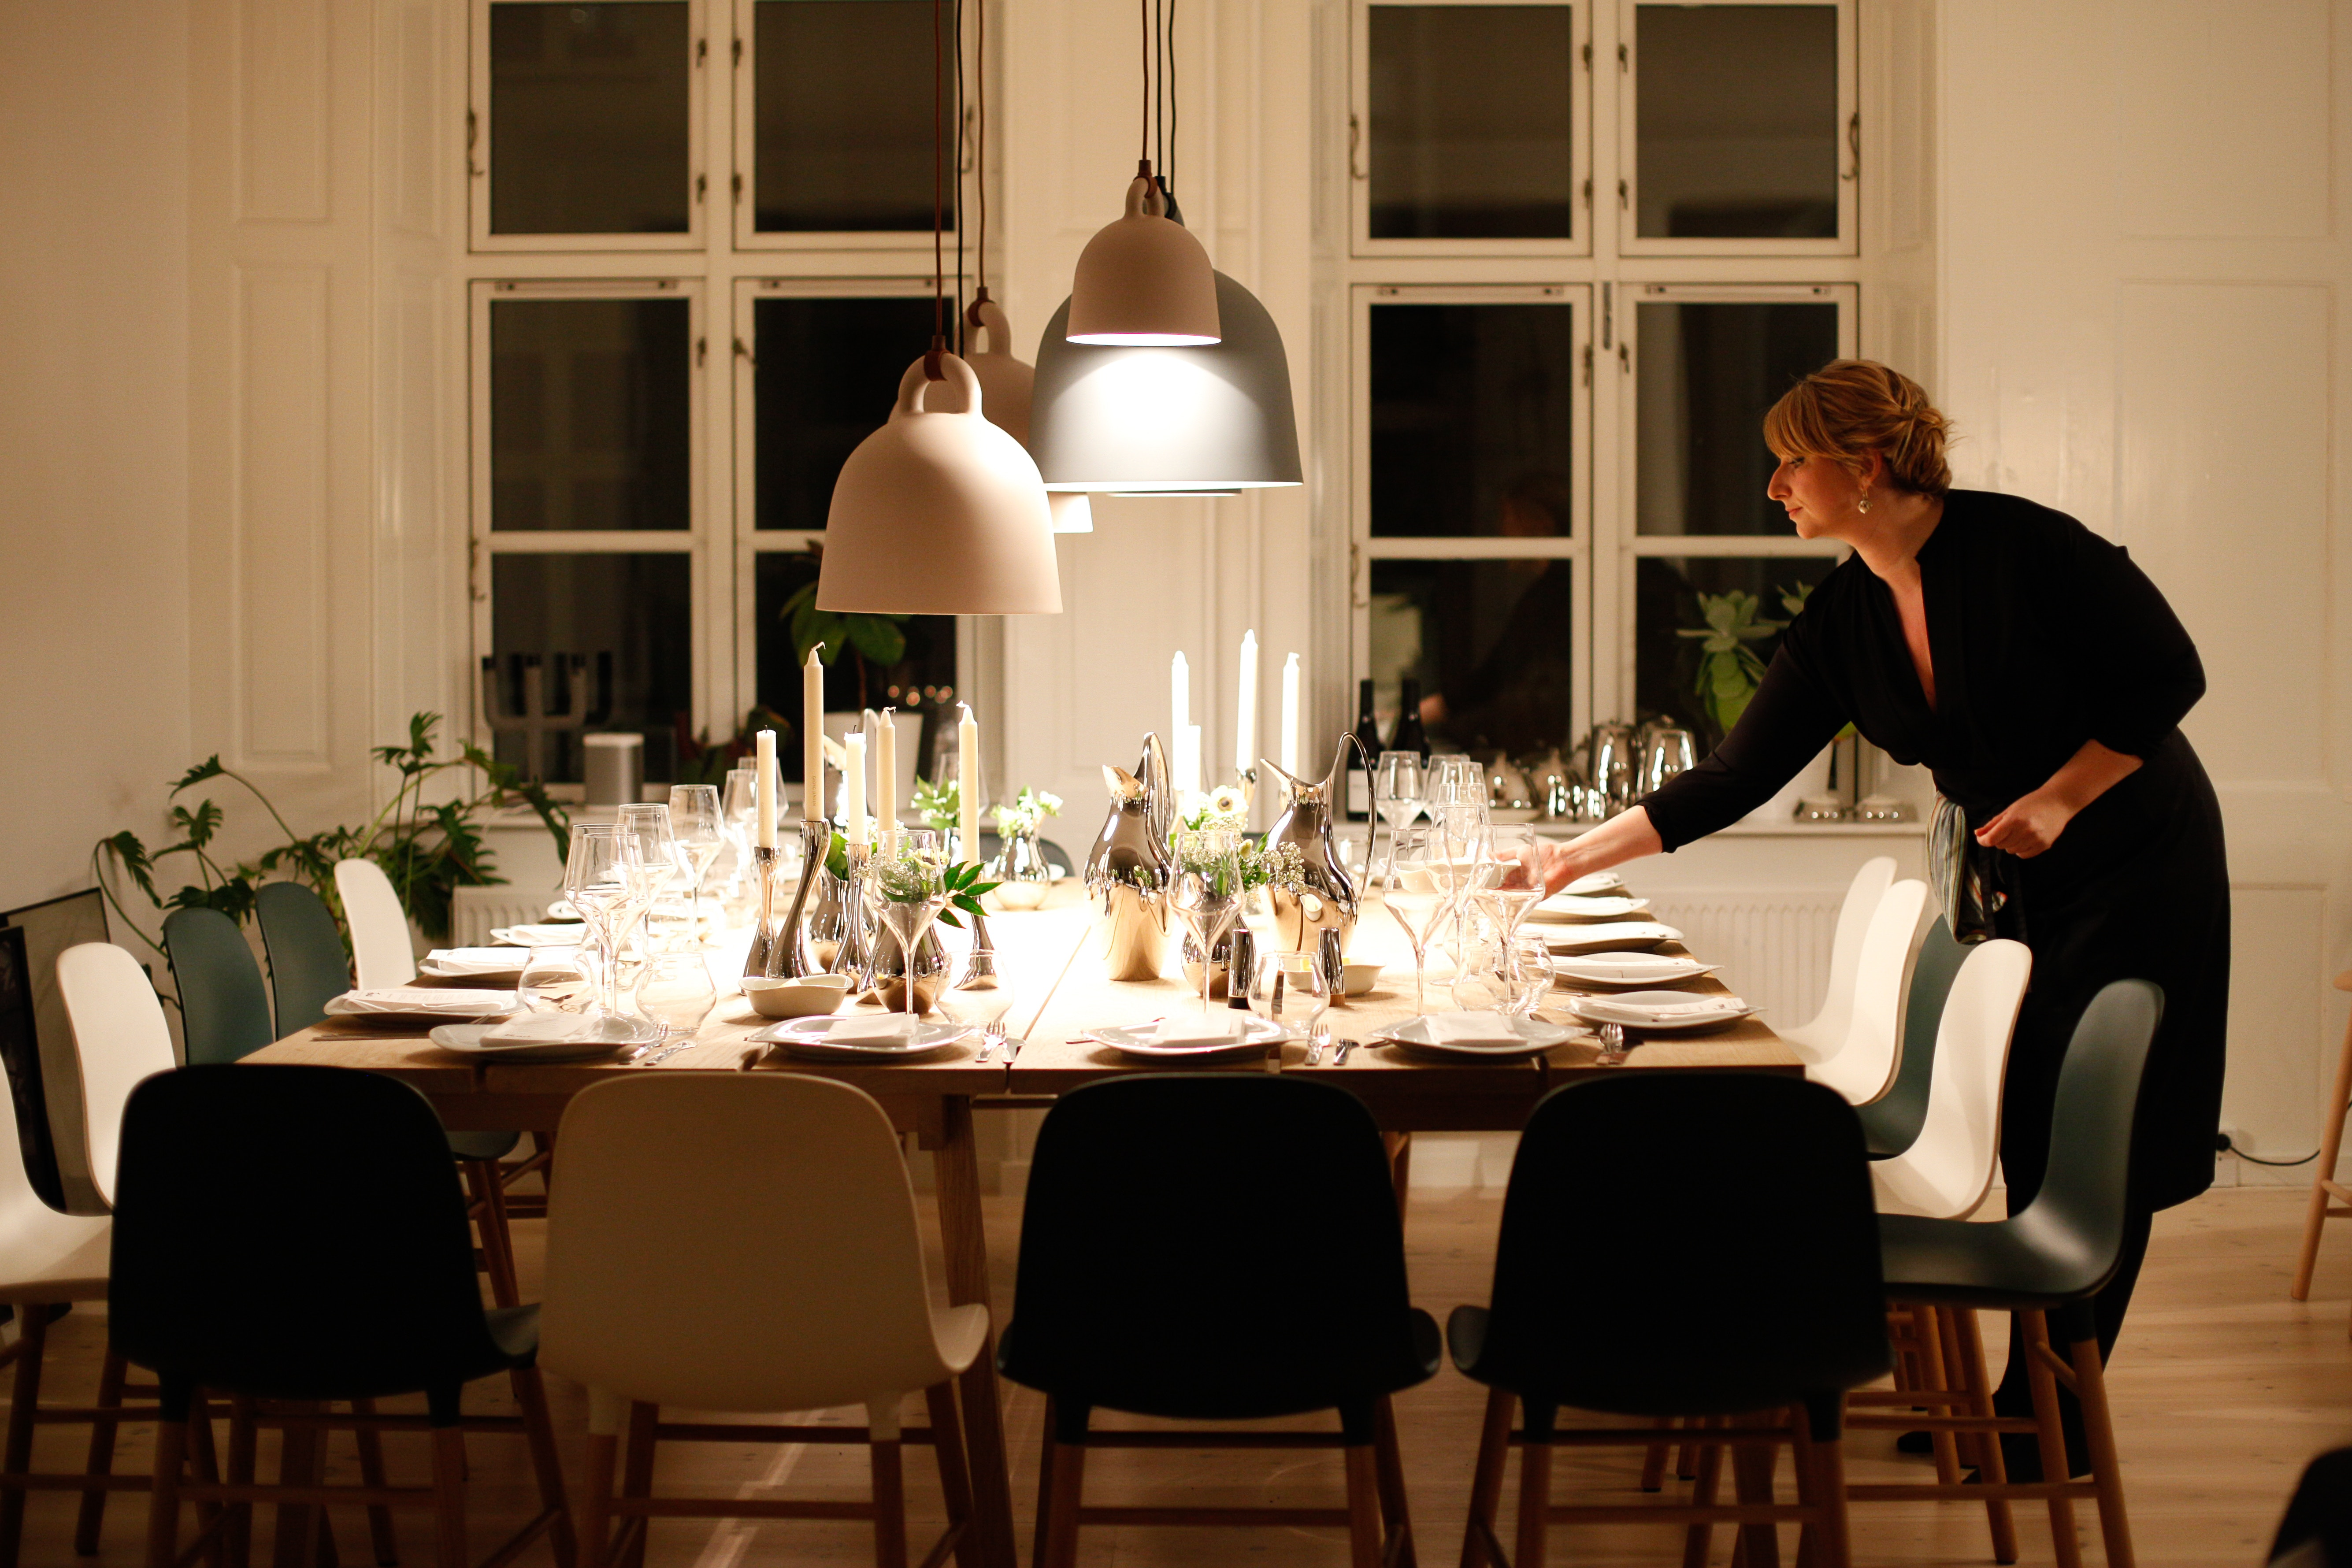 The table that holds the feast is the most important space for a majority of families. It is around that table that everyone gathers to talk and eat, fully immersing themselves in the holiday.